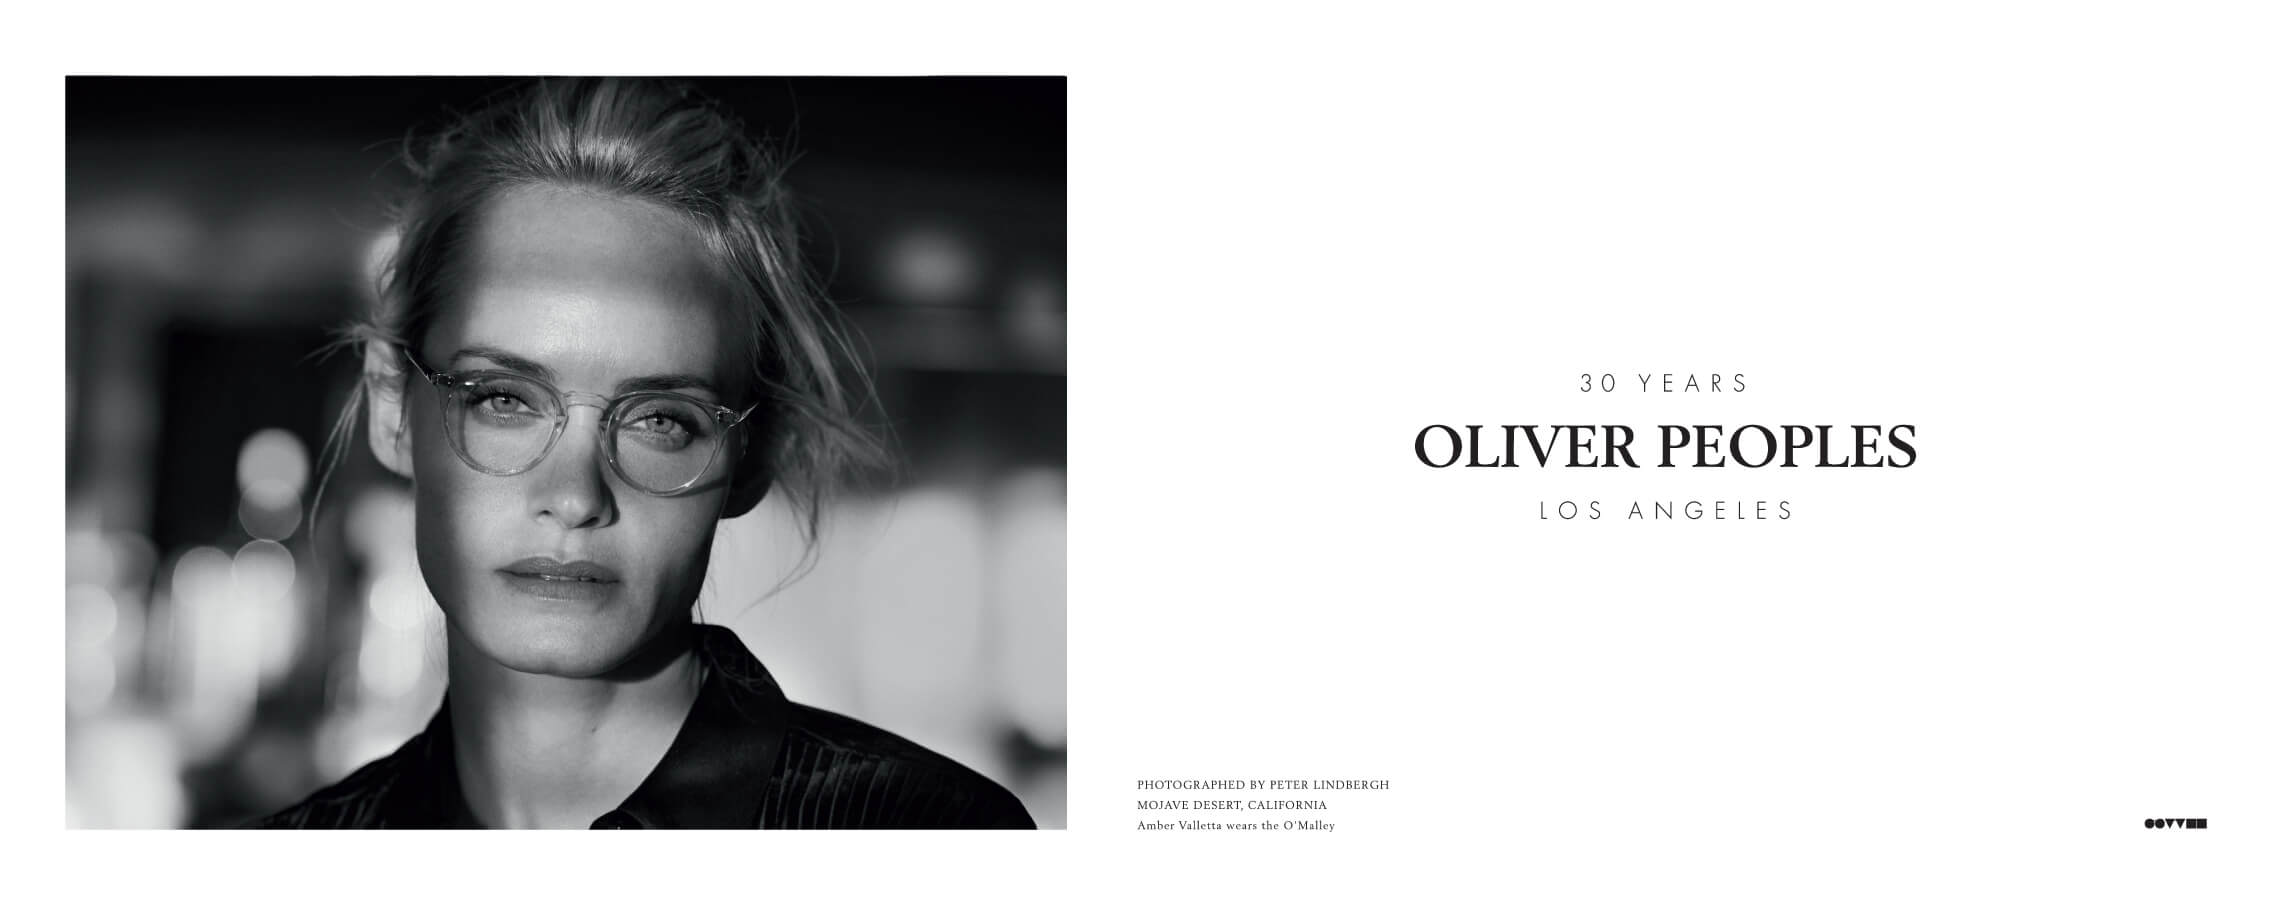 fb911dfa752 Oliver Peoples Summer 2017 Collection - David Clulow